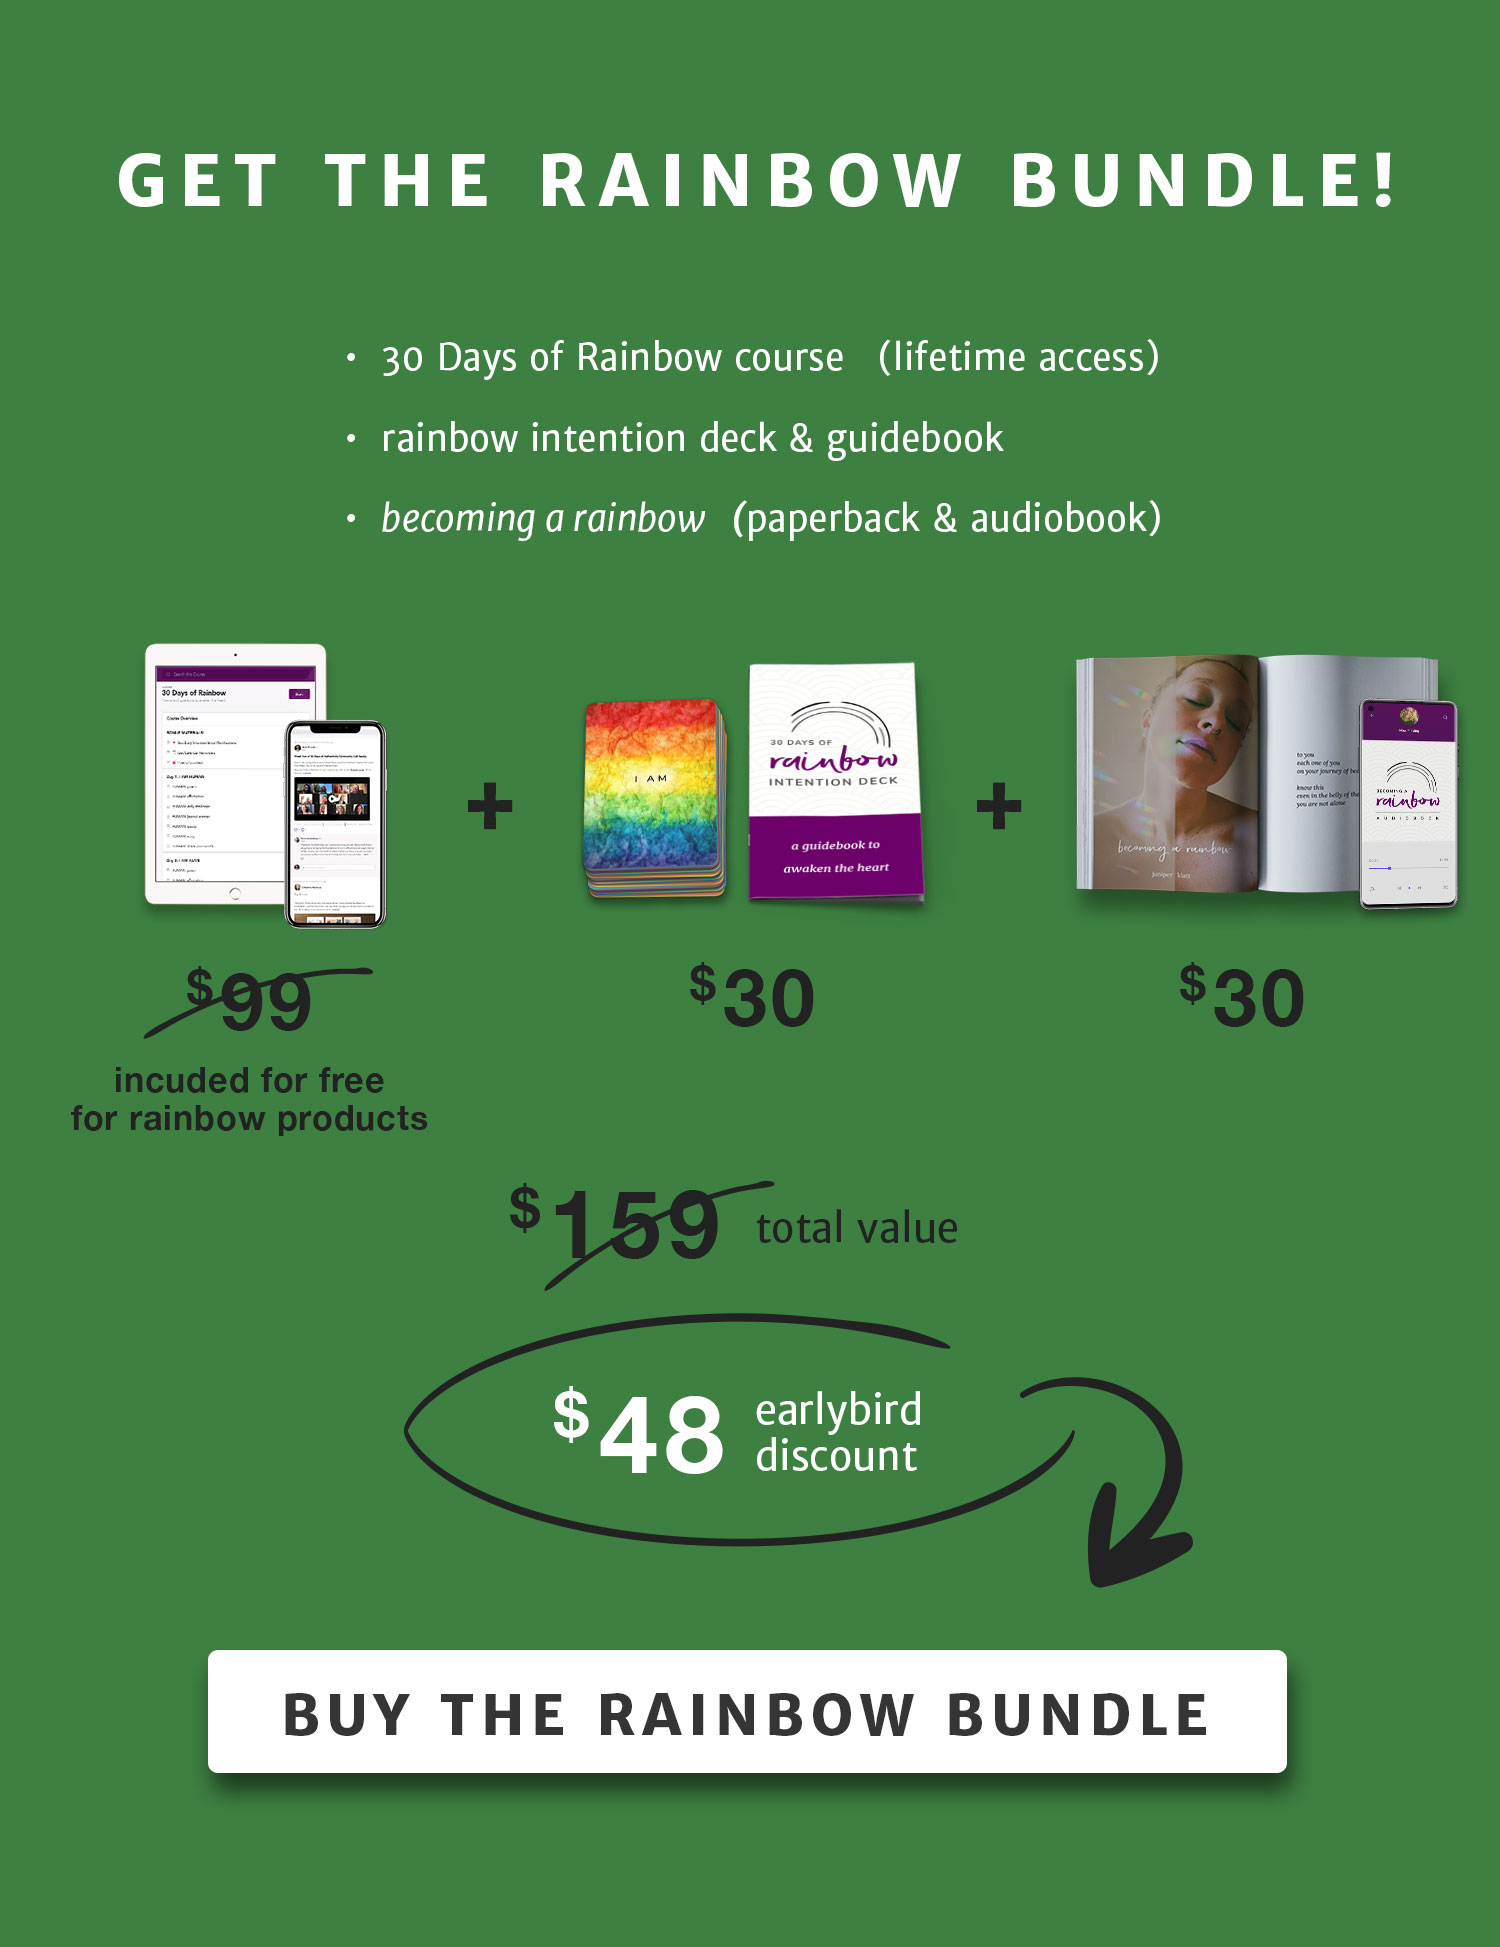 Get the rainbow bundle!